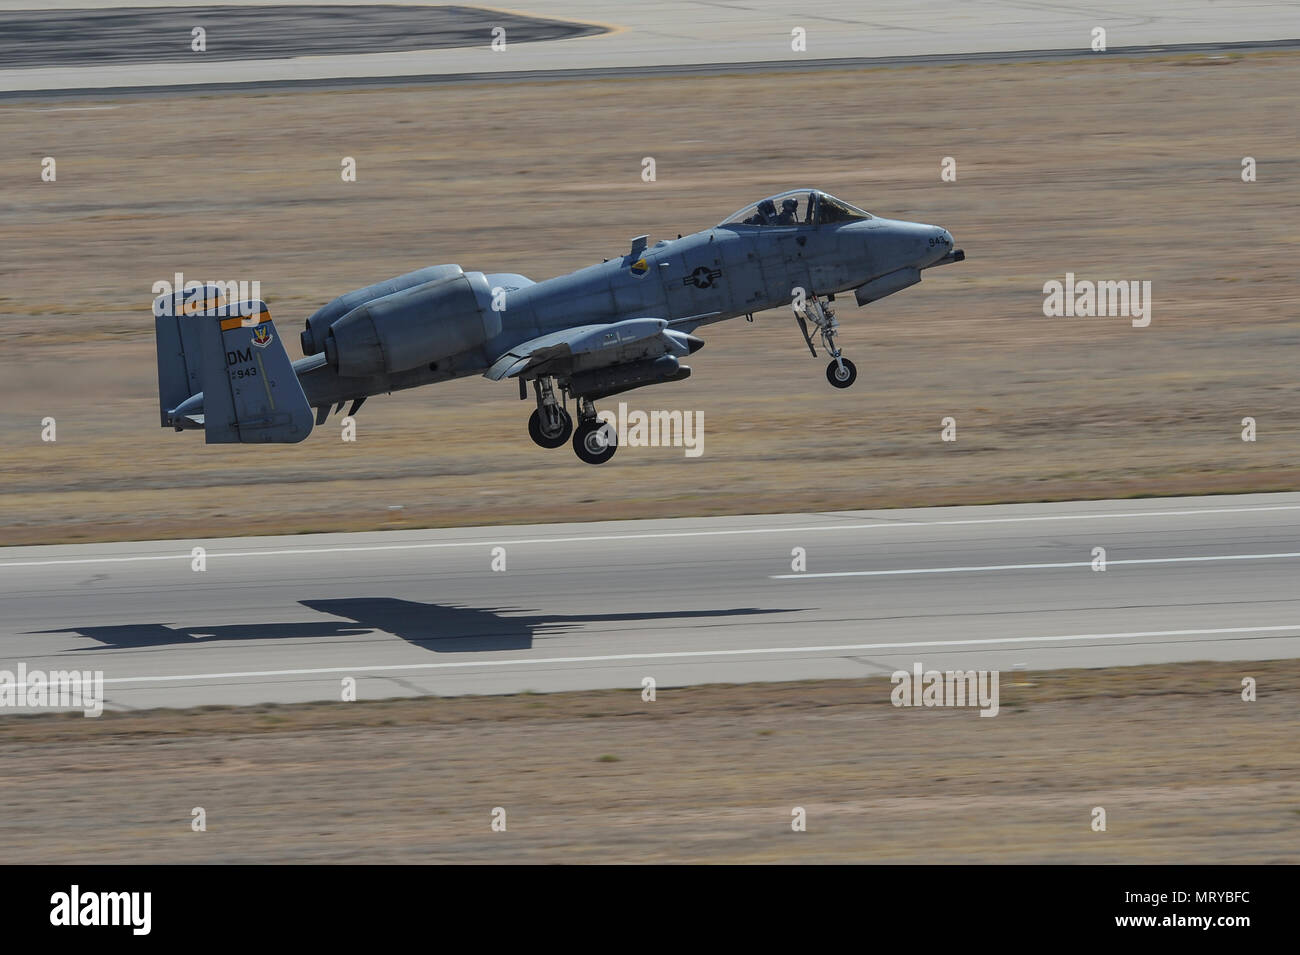 A U S  Air Force A-10C Thunderbolt II assigned to the 357th